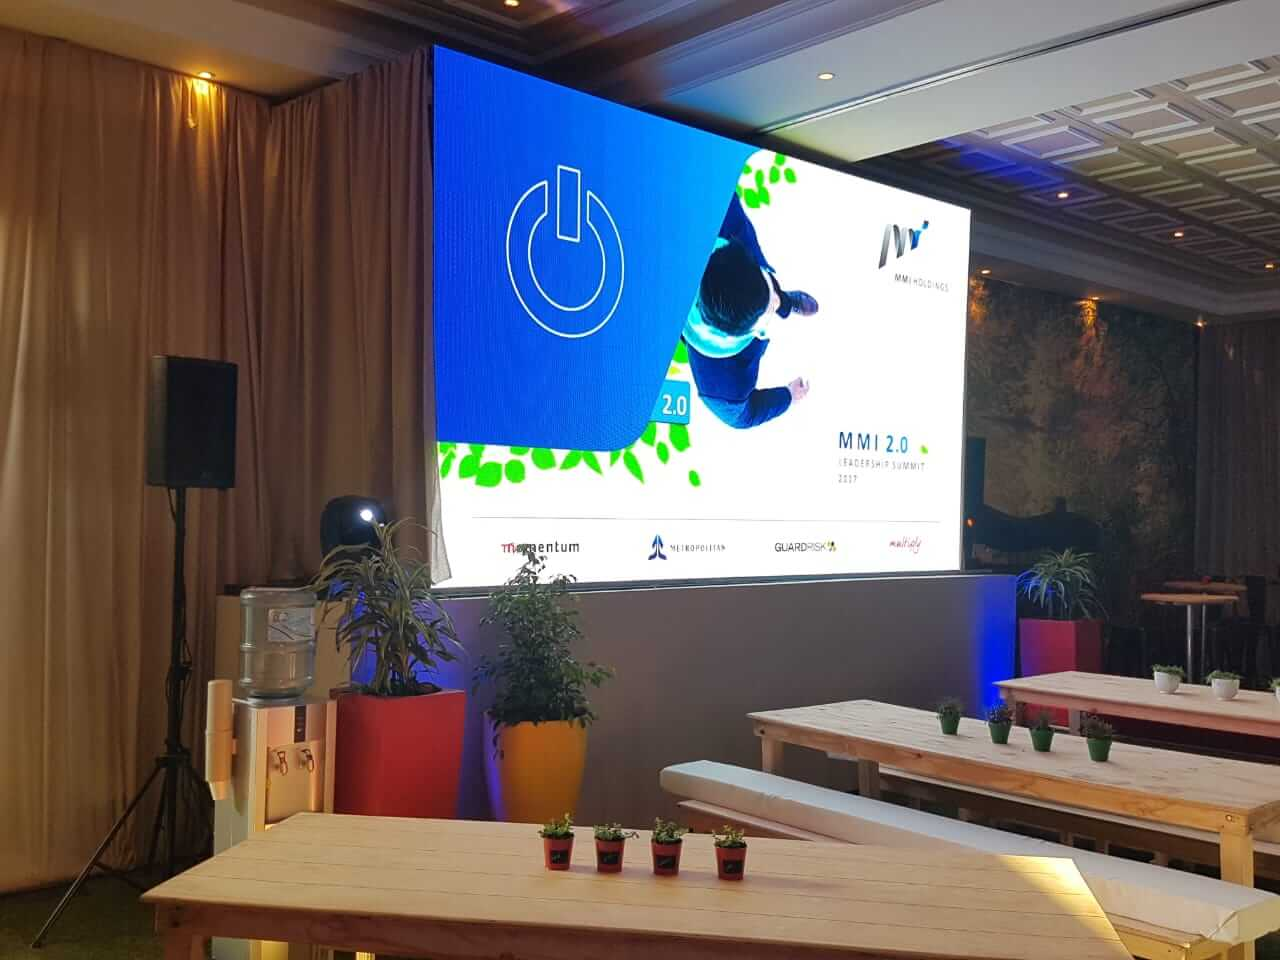 MMI technical conference setup with led video wall